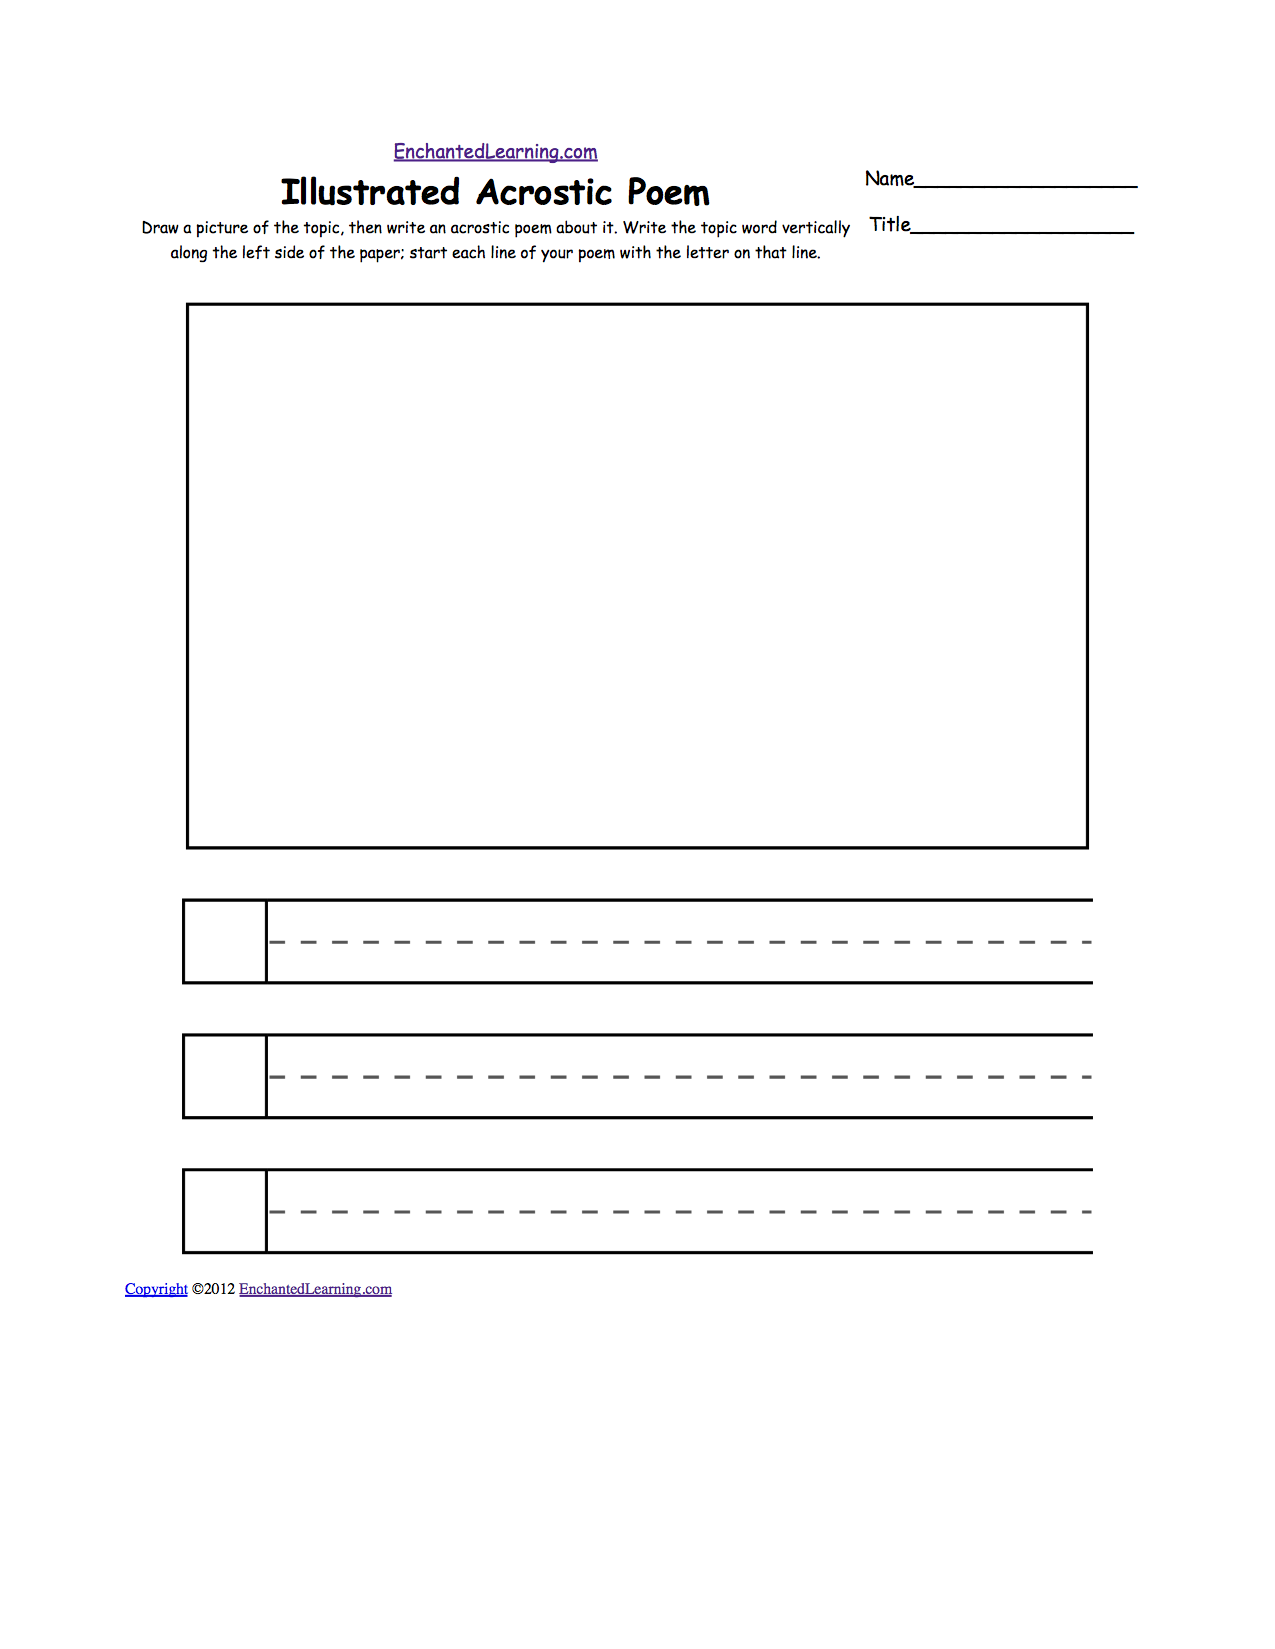 Blank Illustrated Acrostic Poem Worksheets (Handwriting Lines): Worksheet  Printout   EnchantedLearning.com  Blank Writing Sheet